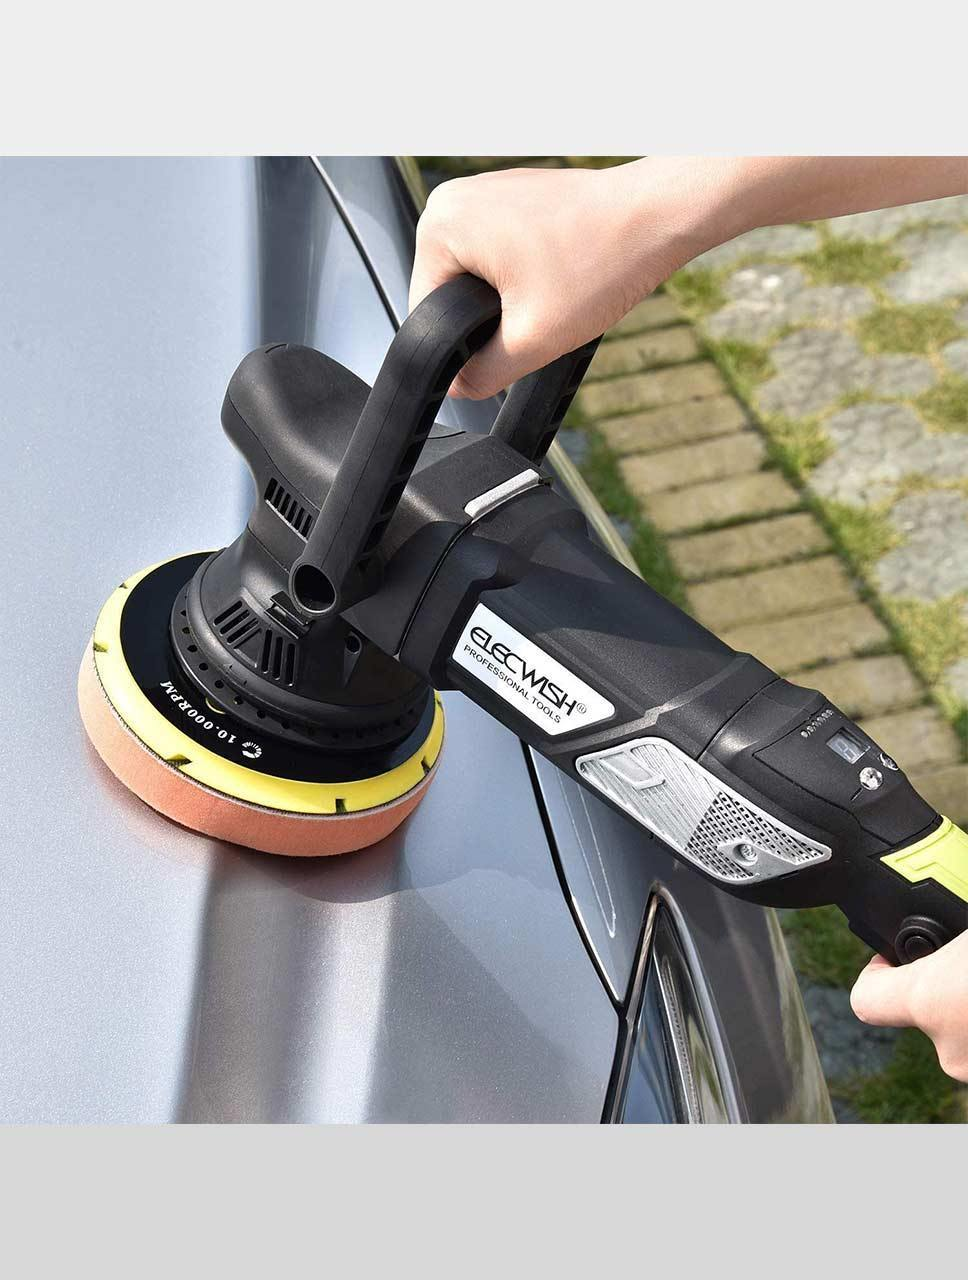 950W Car Buffer Polisher